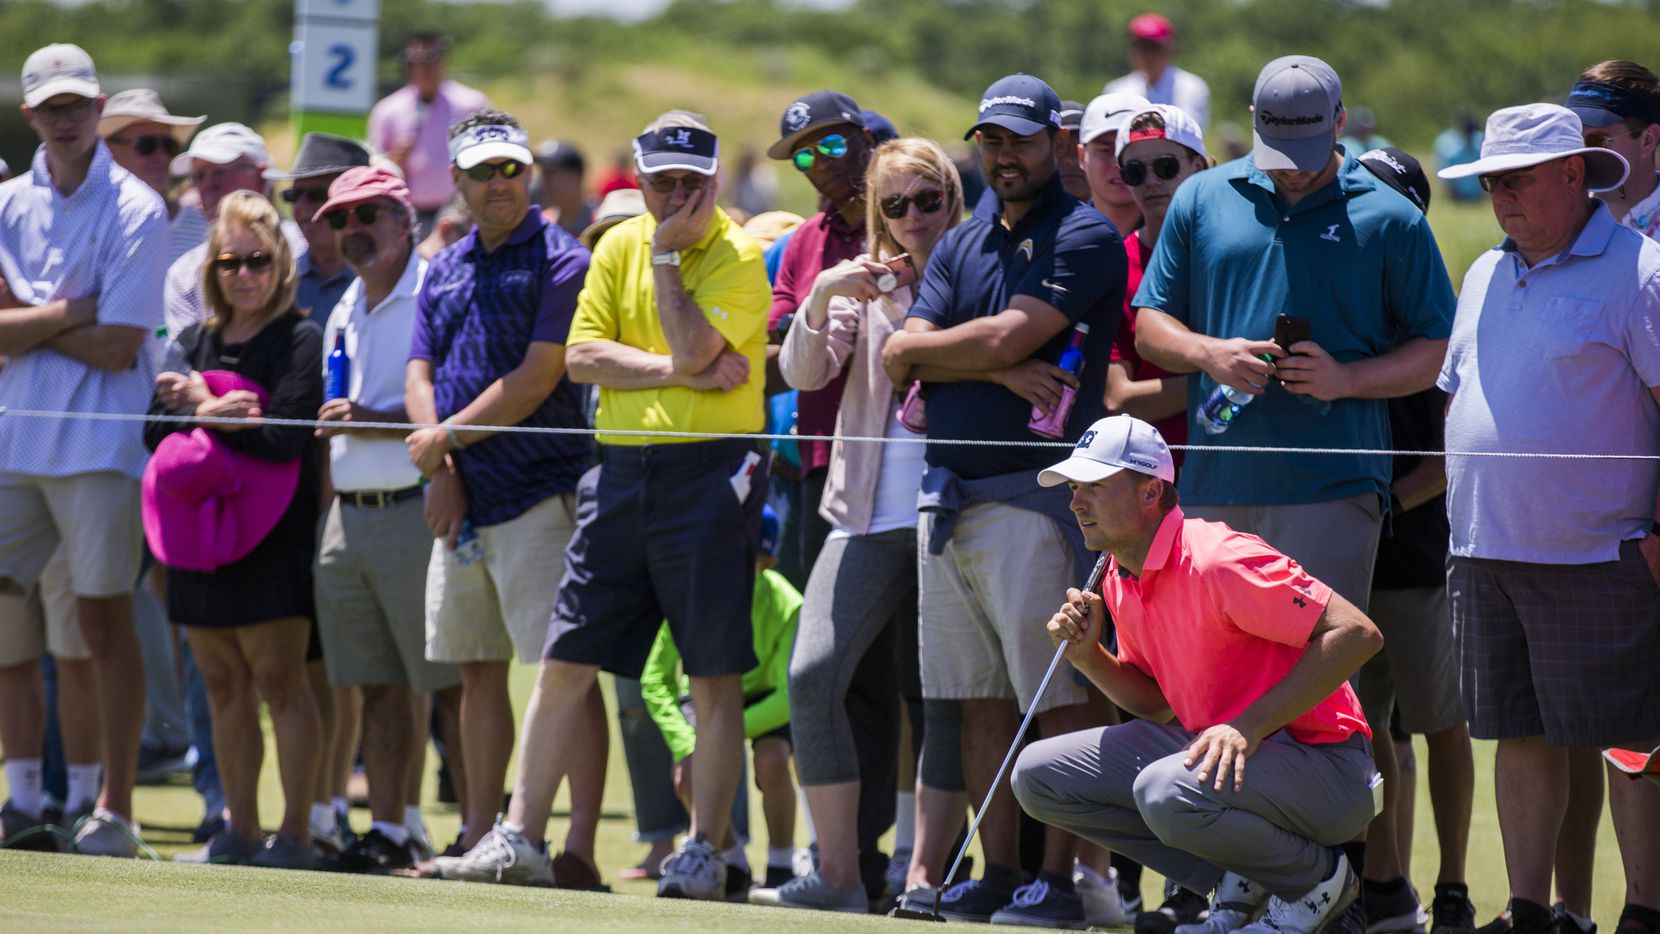 Jordan Spieth lines up a shot on the first green during round 4 of the AT&T Byron Nelson golf tournament on Sunday, May 12, 2019 at Trinity Forest Golf Club in Dallas.